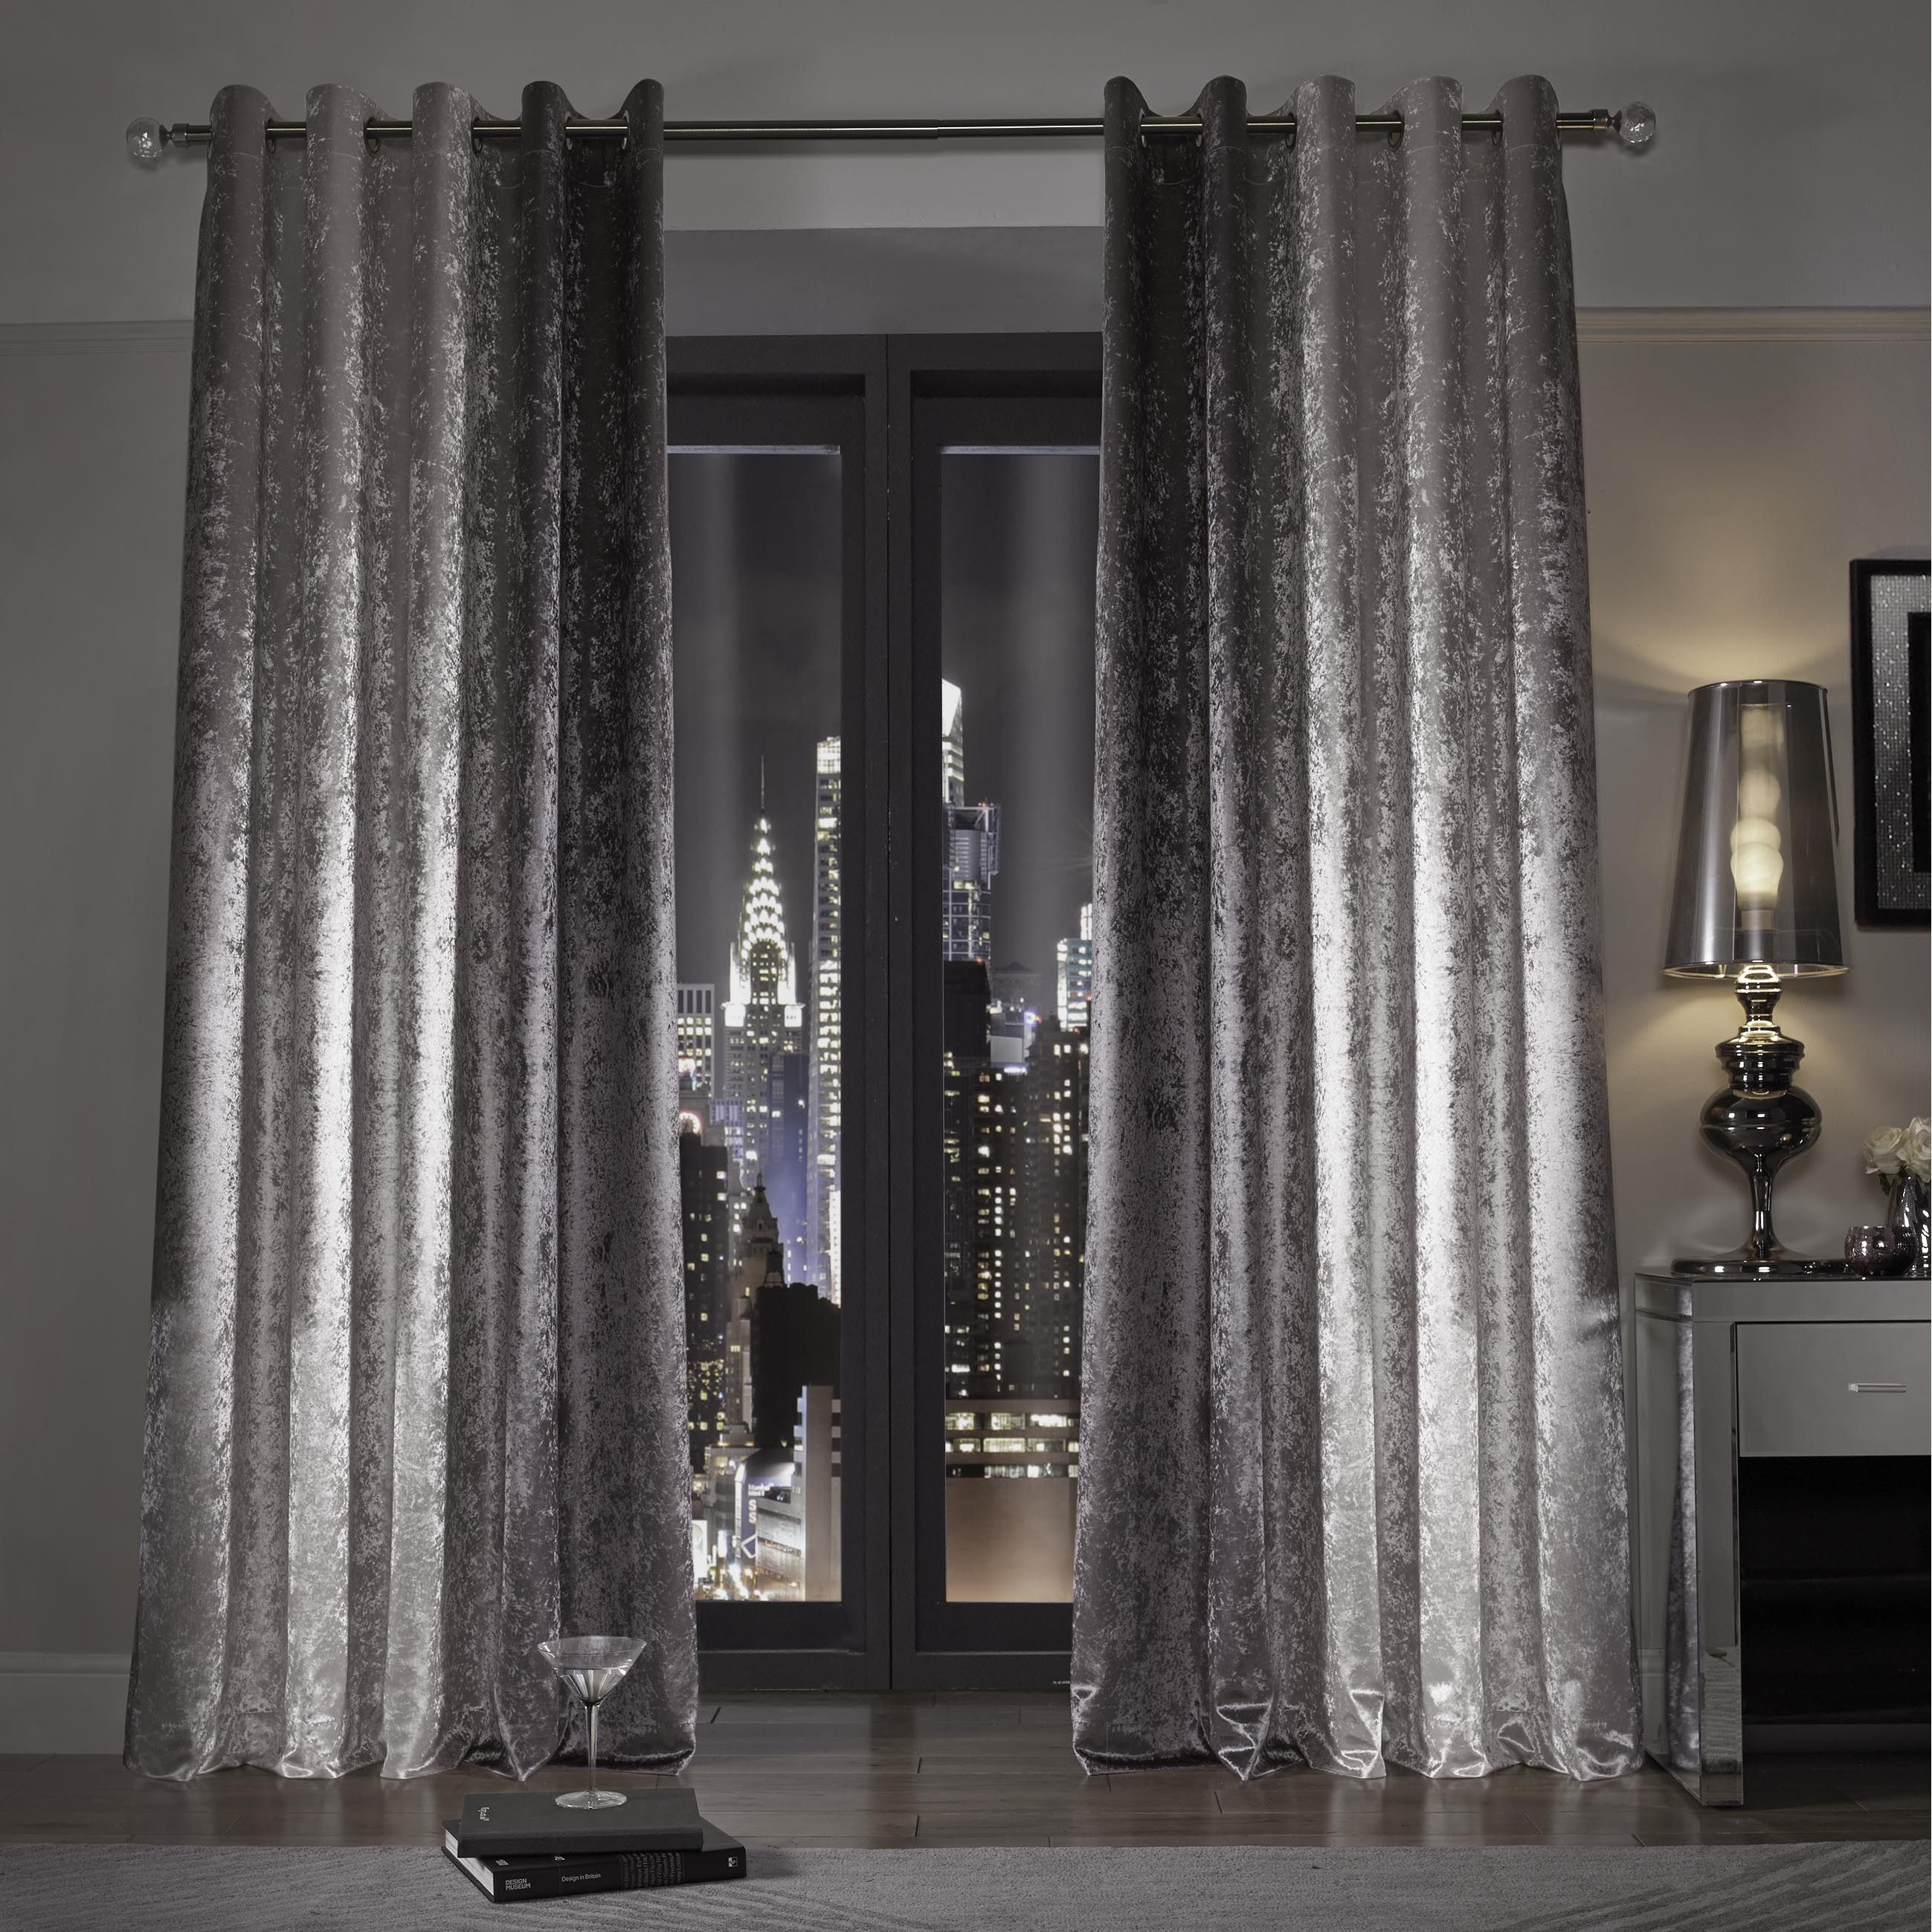 Kylie Minogue At Home Natala Slate Grey Silver Velvet Lined Ready Made Eyelet Ring Top Curtains Silver Bedroom Silver Curtains Sparkly Bedroom